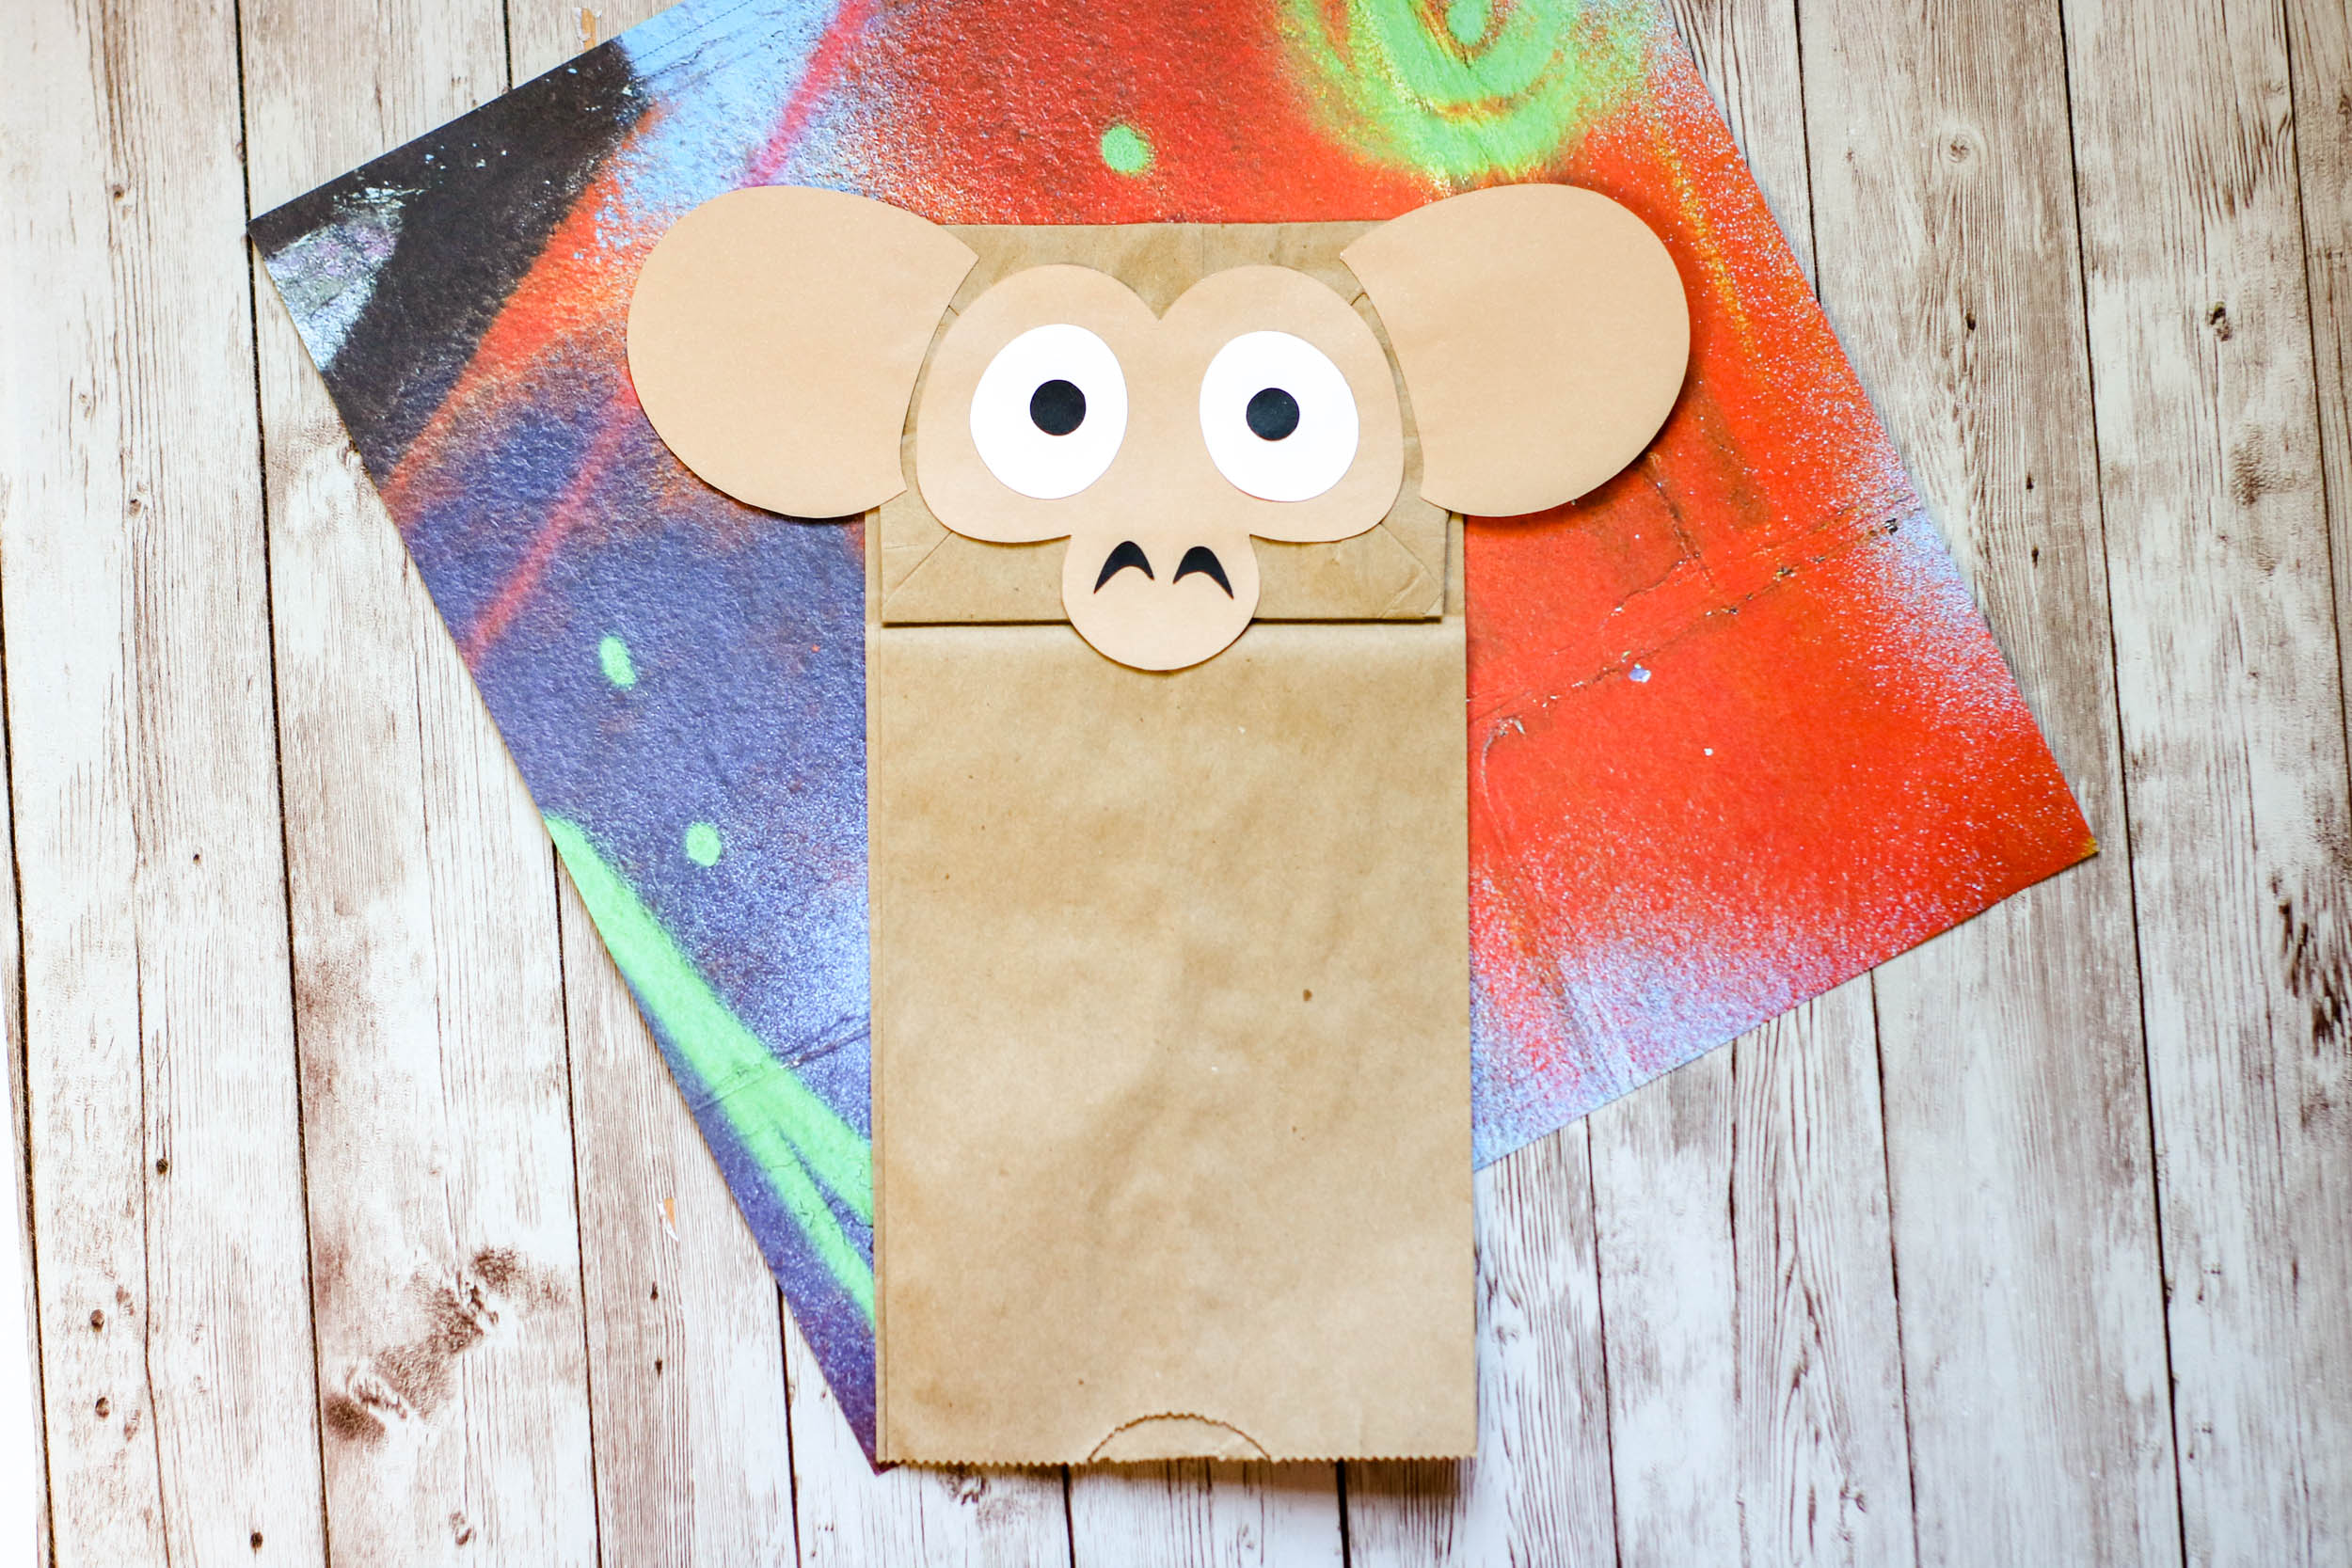 The brown paper bag monkey on a table.